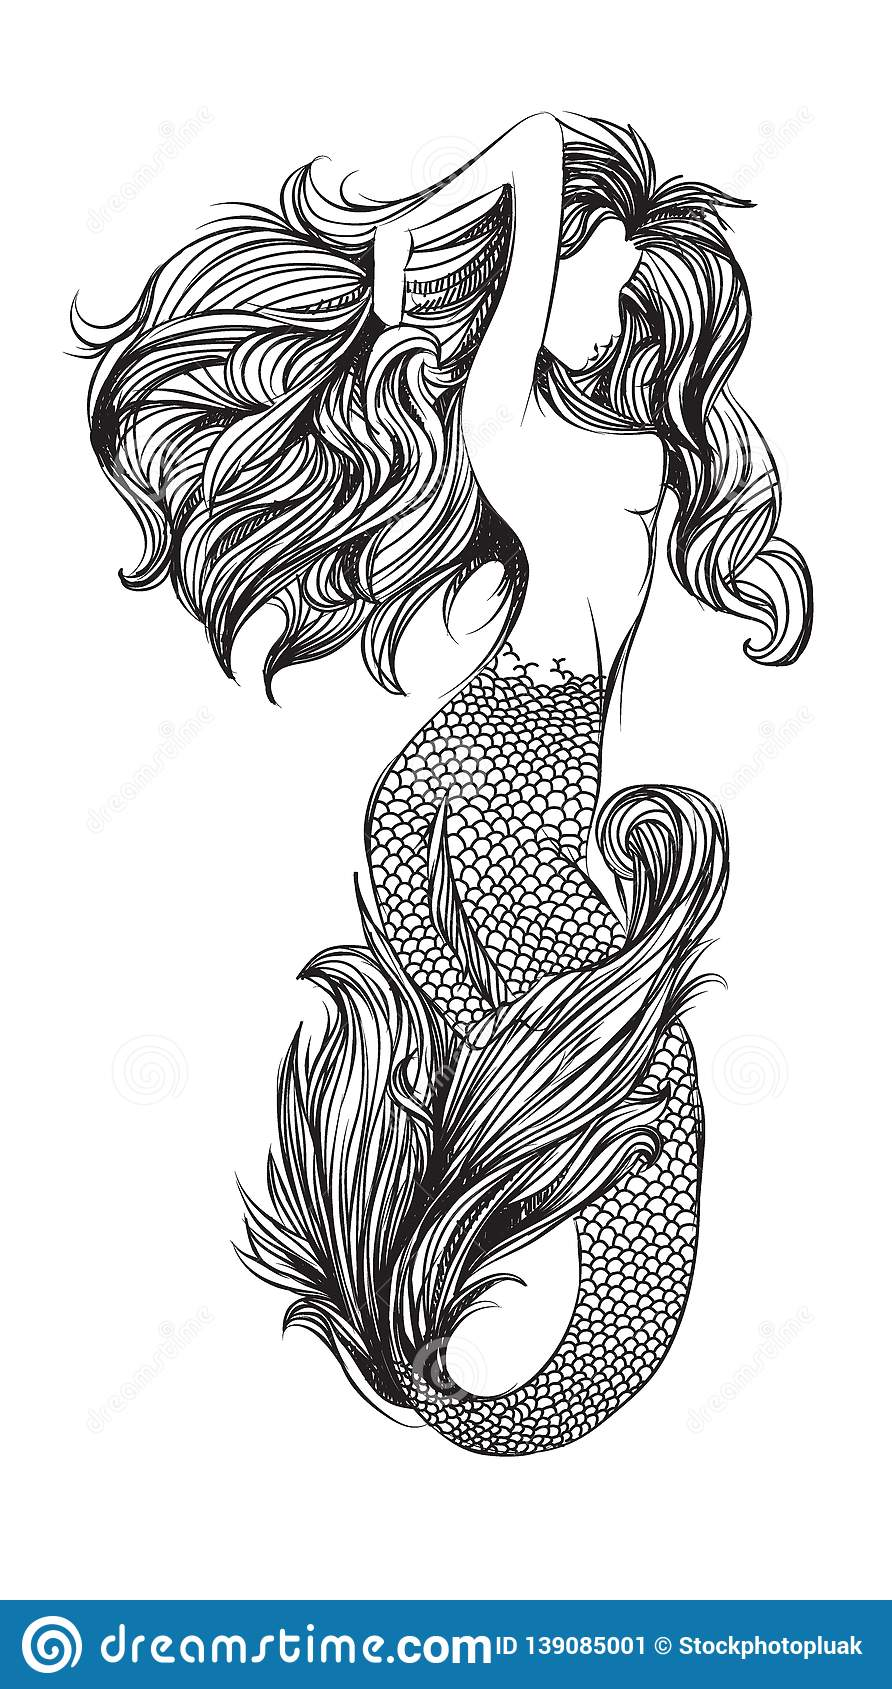 Tattoo art mermaid hand drawing and sketch black and white